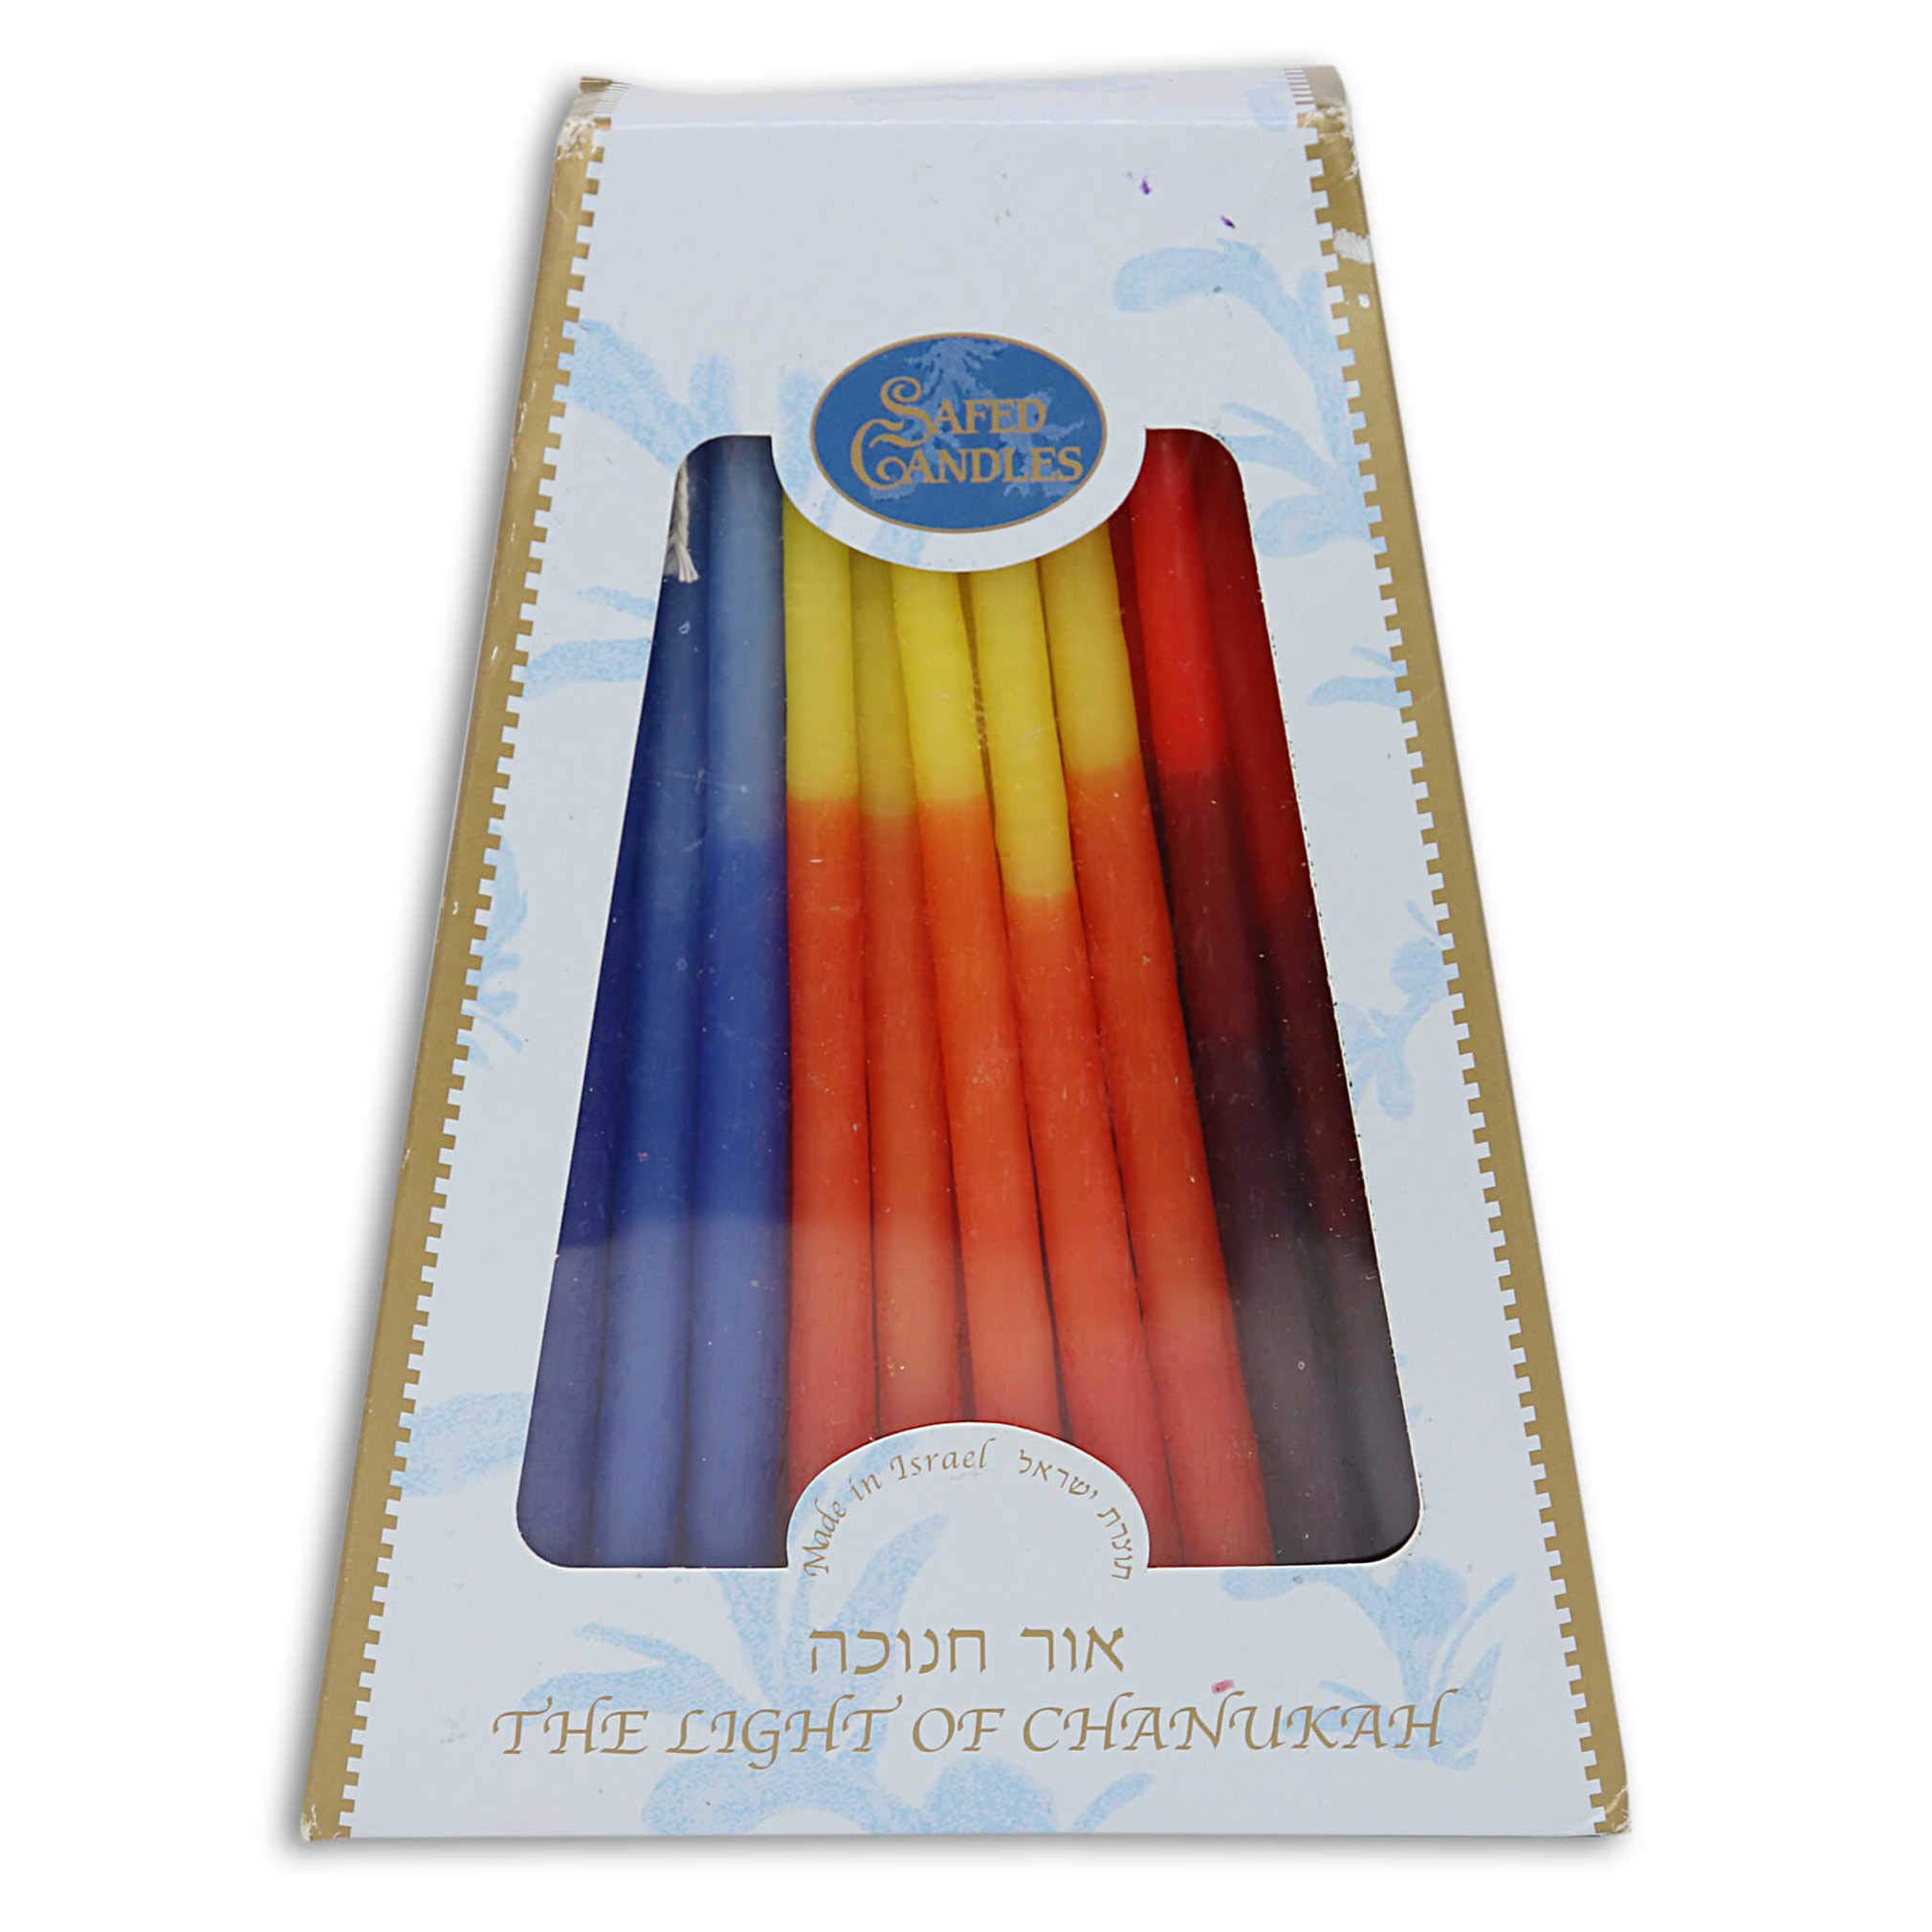 Hanukkah Candles - by Safed Candles, Handcrafted in Israel, 12 Boxes of 45 - Fits Most Menorahs - Deluxe, Kosher, Dripless, Wax, for Chanukah (Multi-Colored)